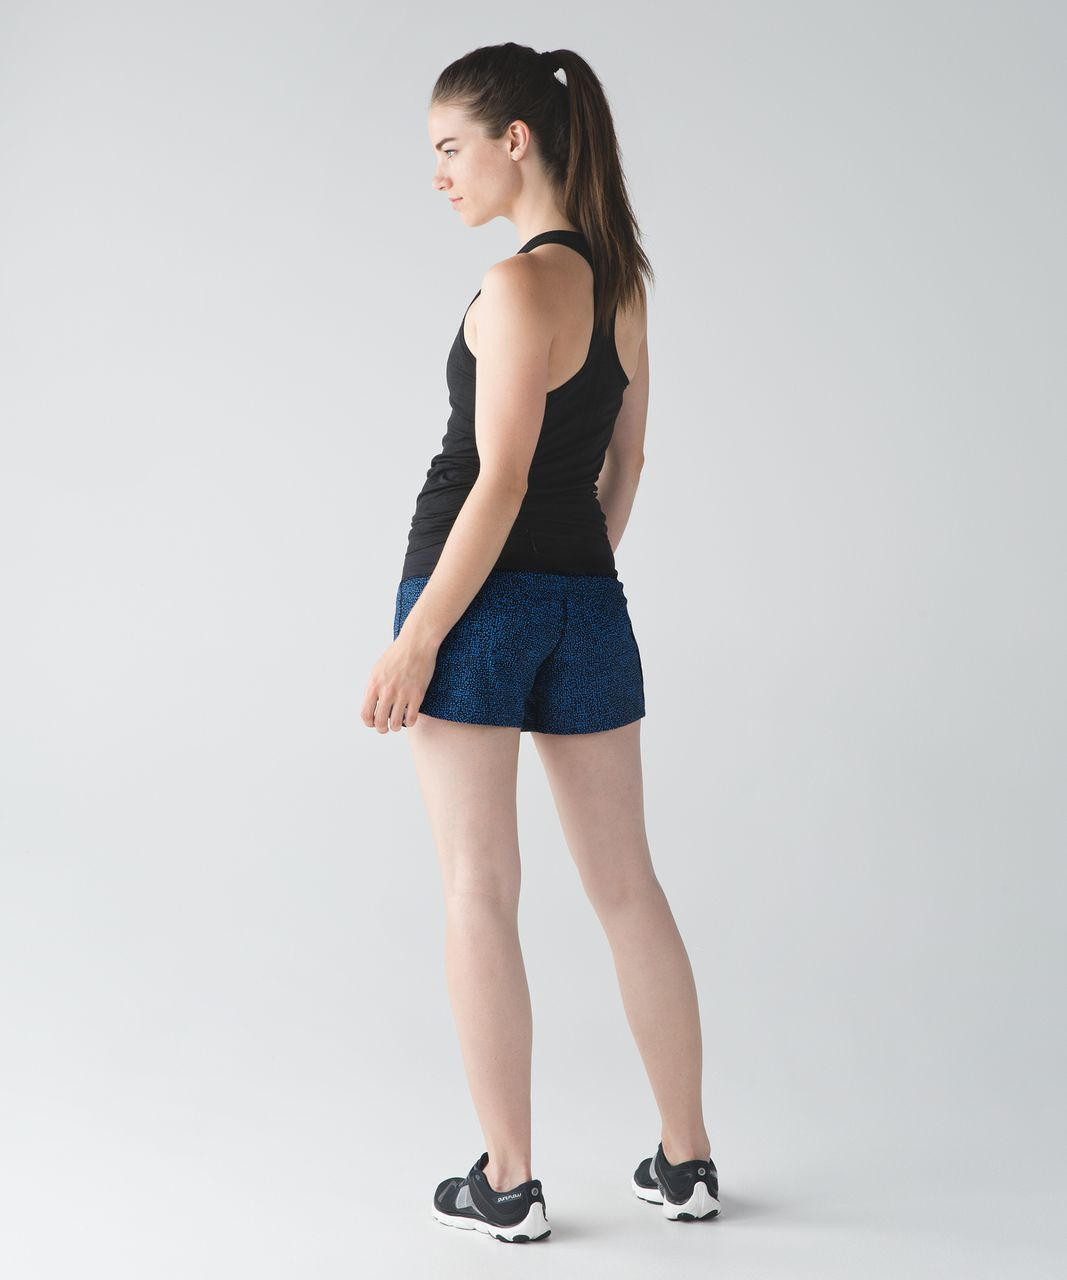 Lululemon Run Times Short - Bubbles Pipe Dream Blue Black / Black